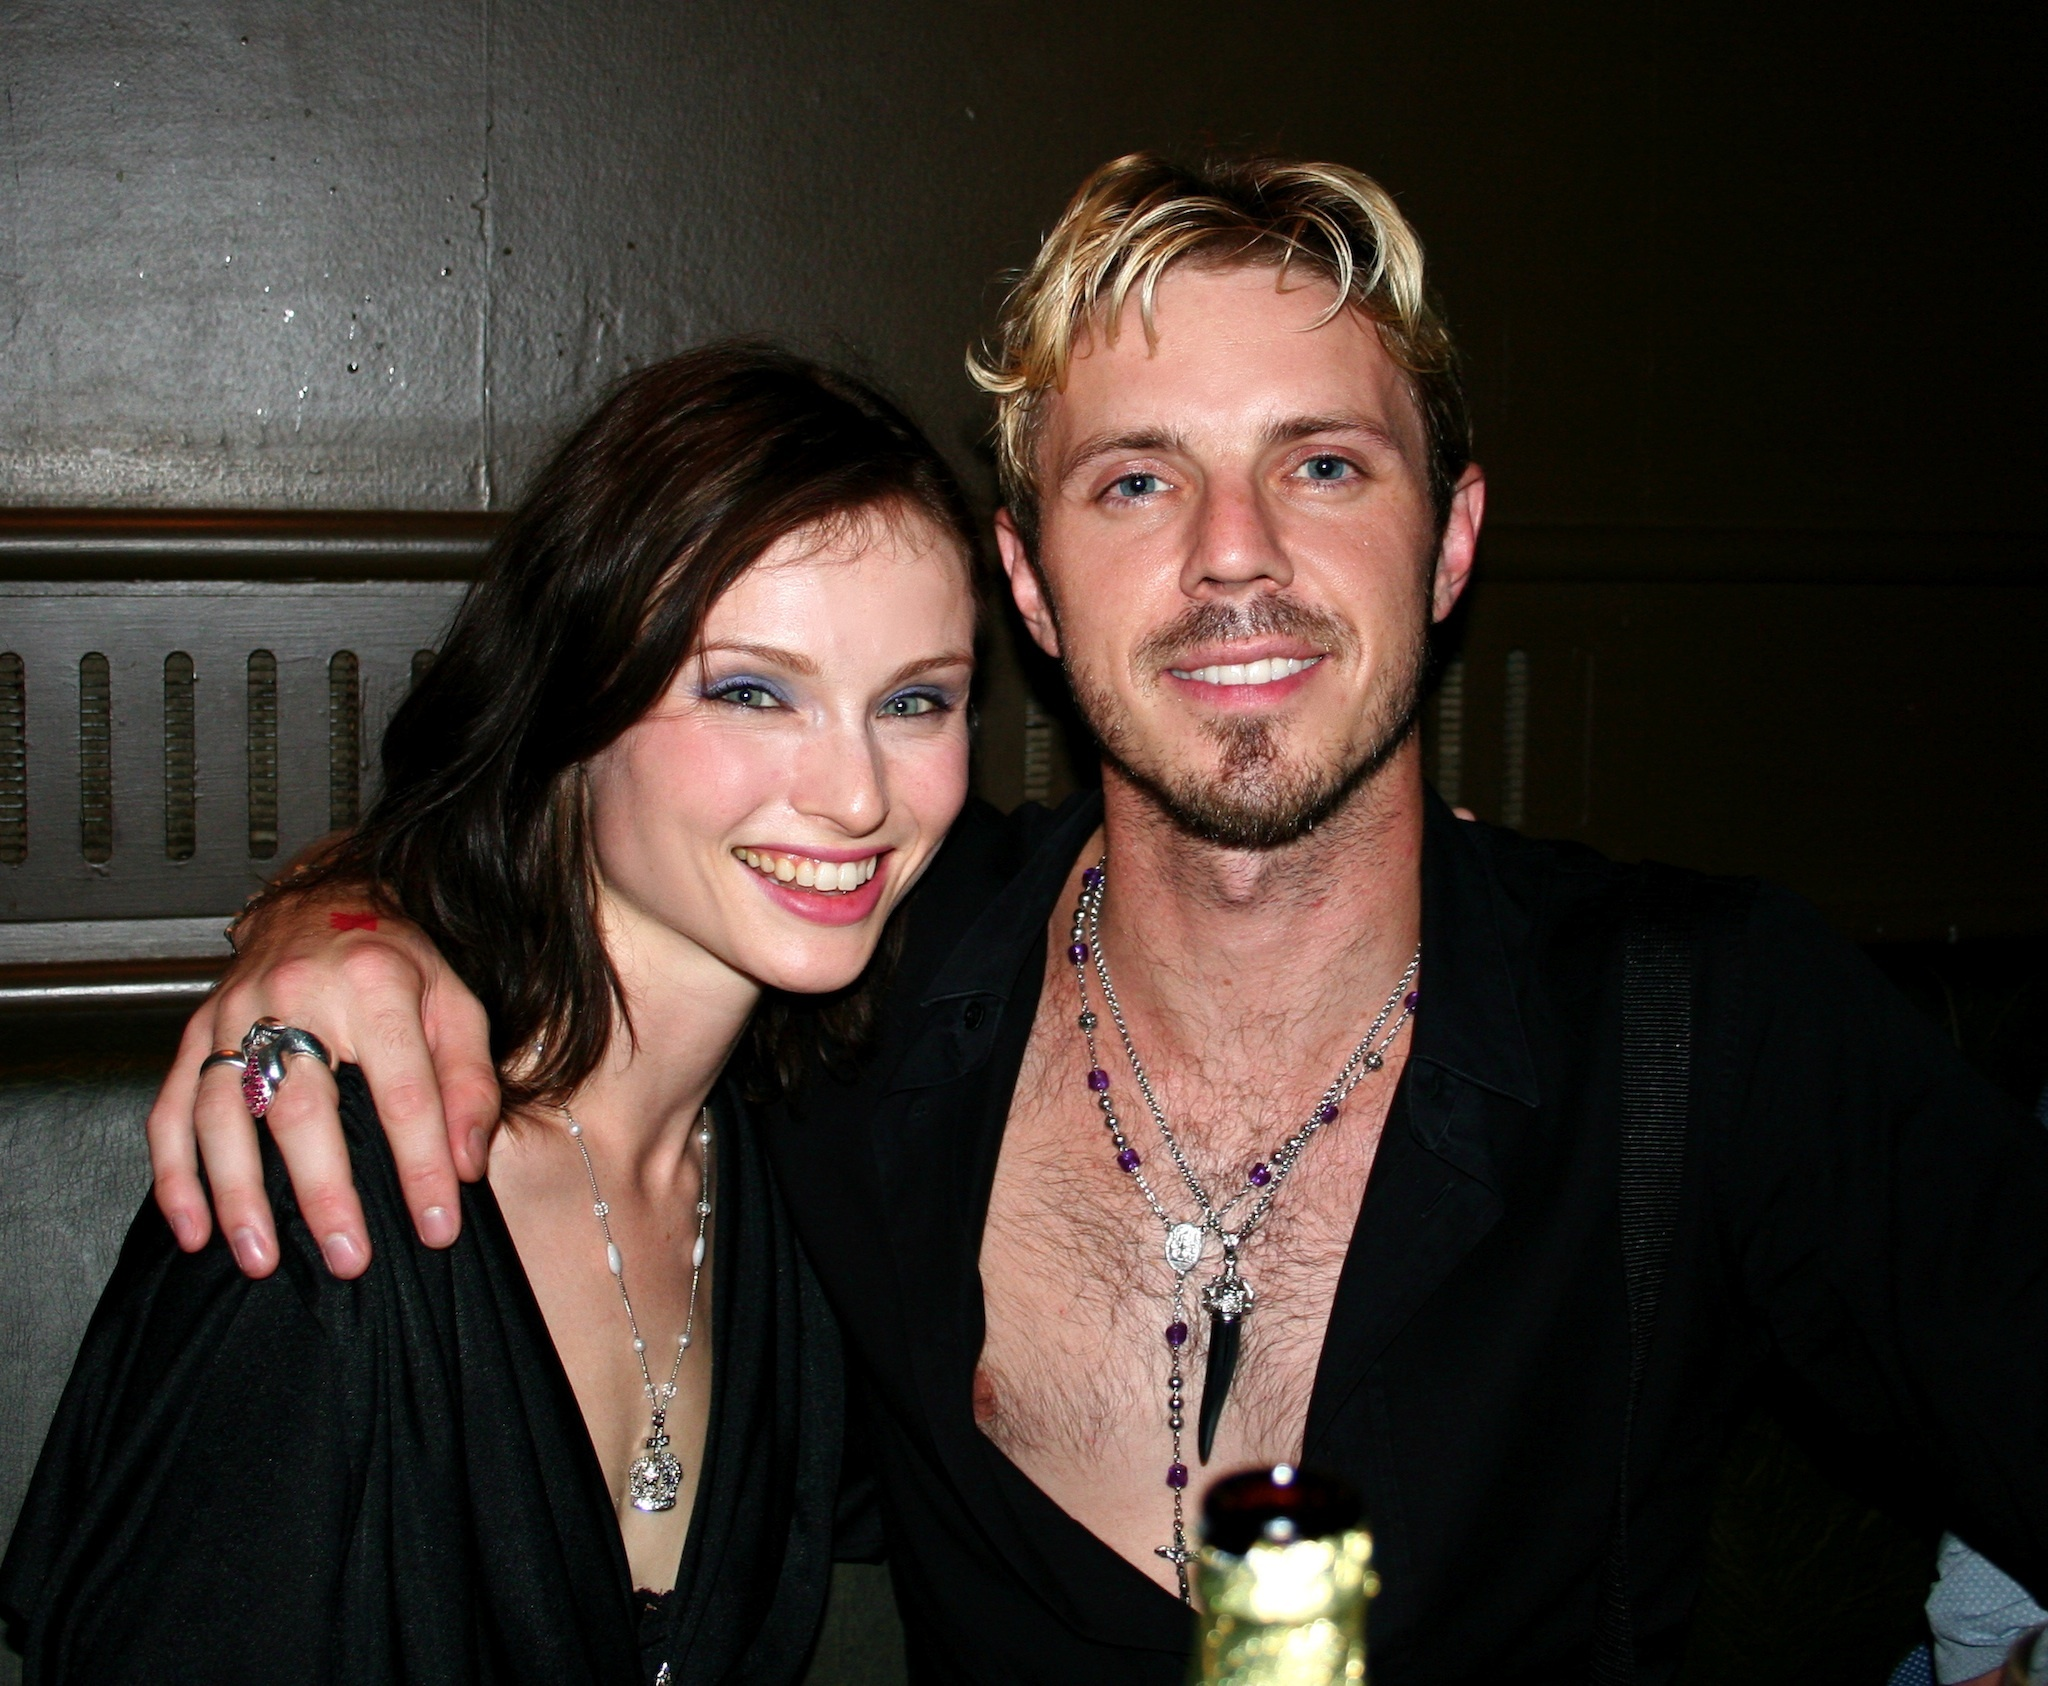 Jake Shears and Sophie Ellis-Bextor at Rebel Rebel